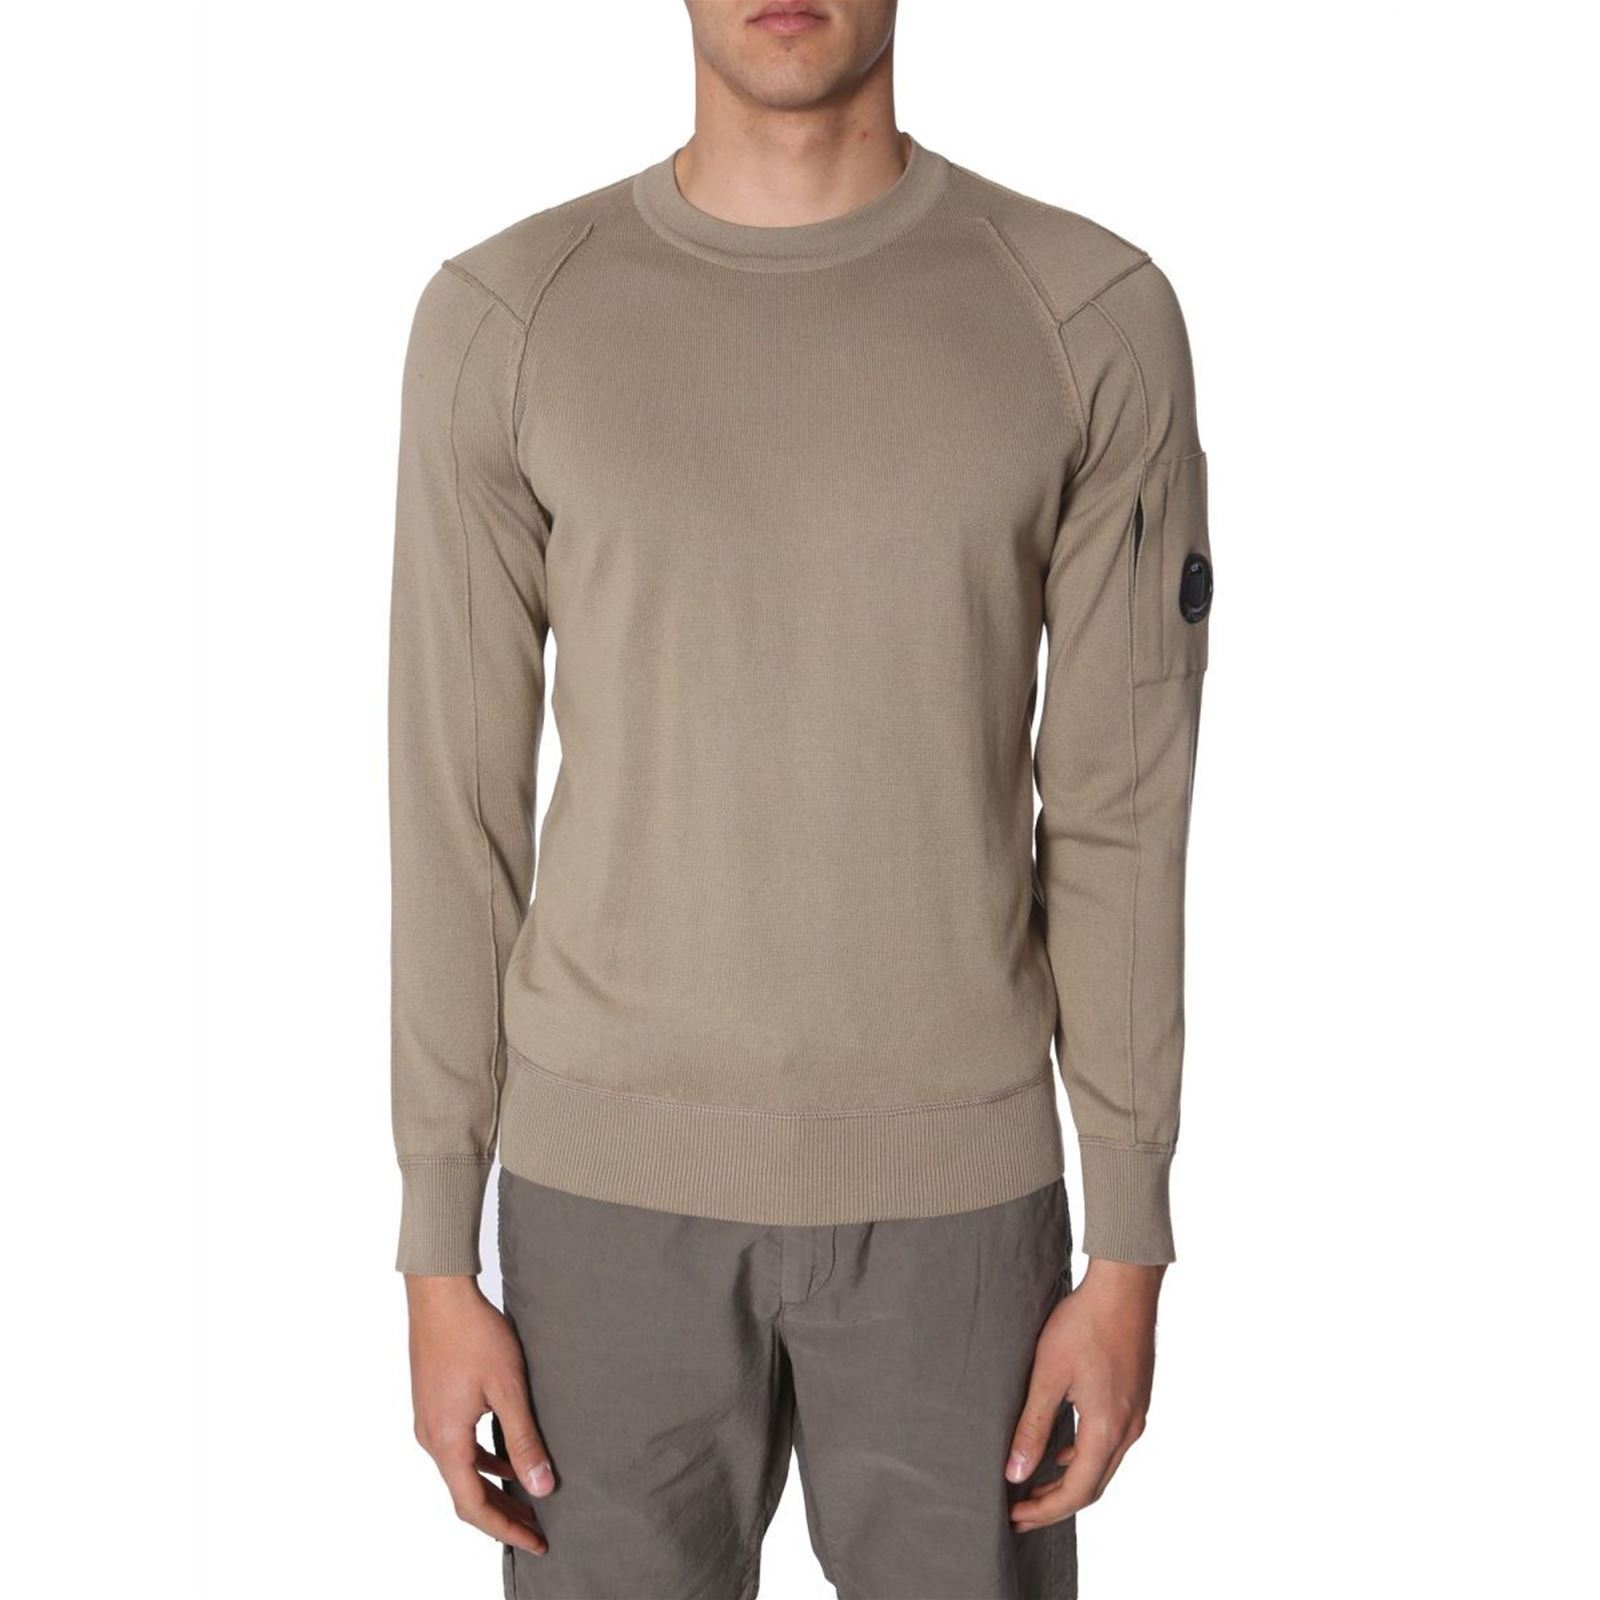 Cp PullBeige V Company Cp Homme Company PullBeige TlJcFK1